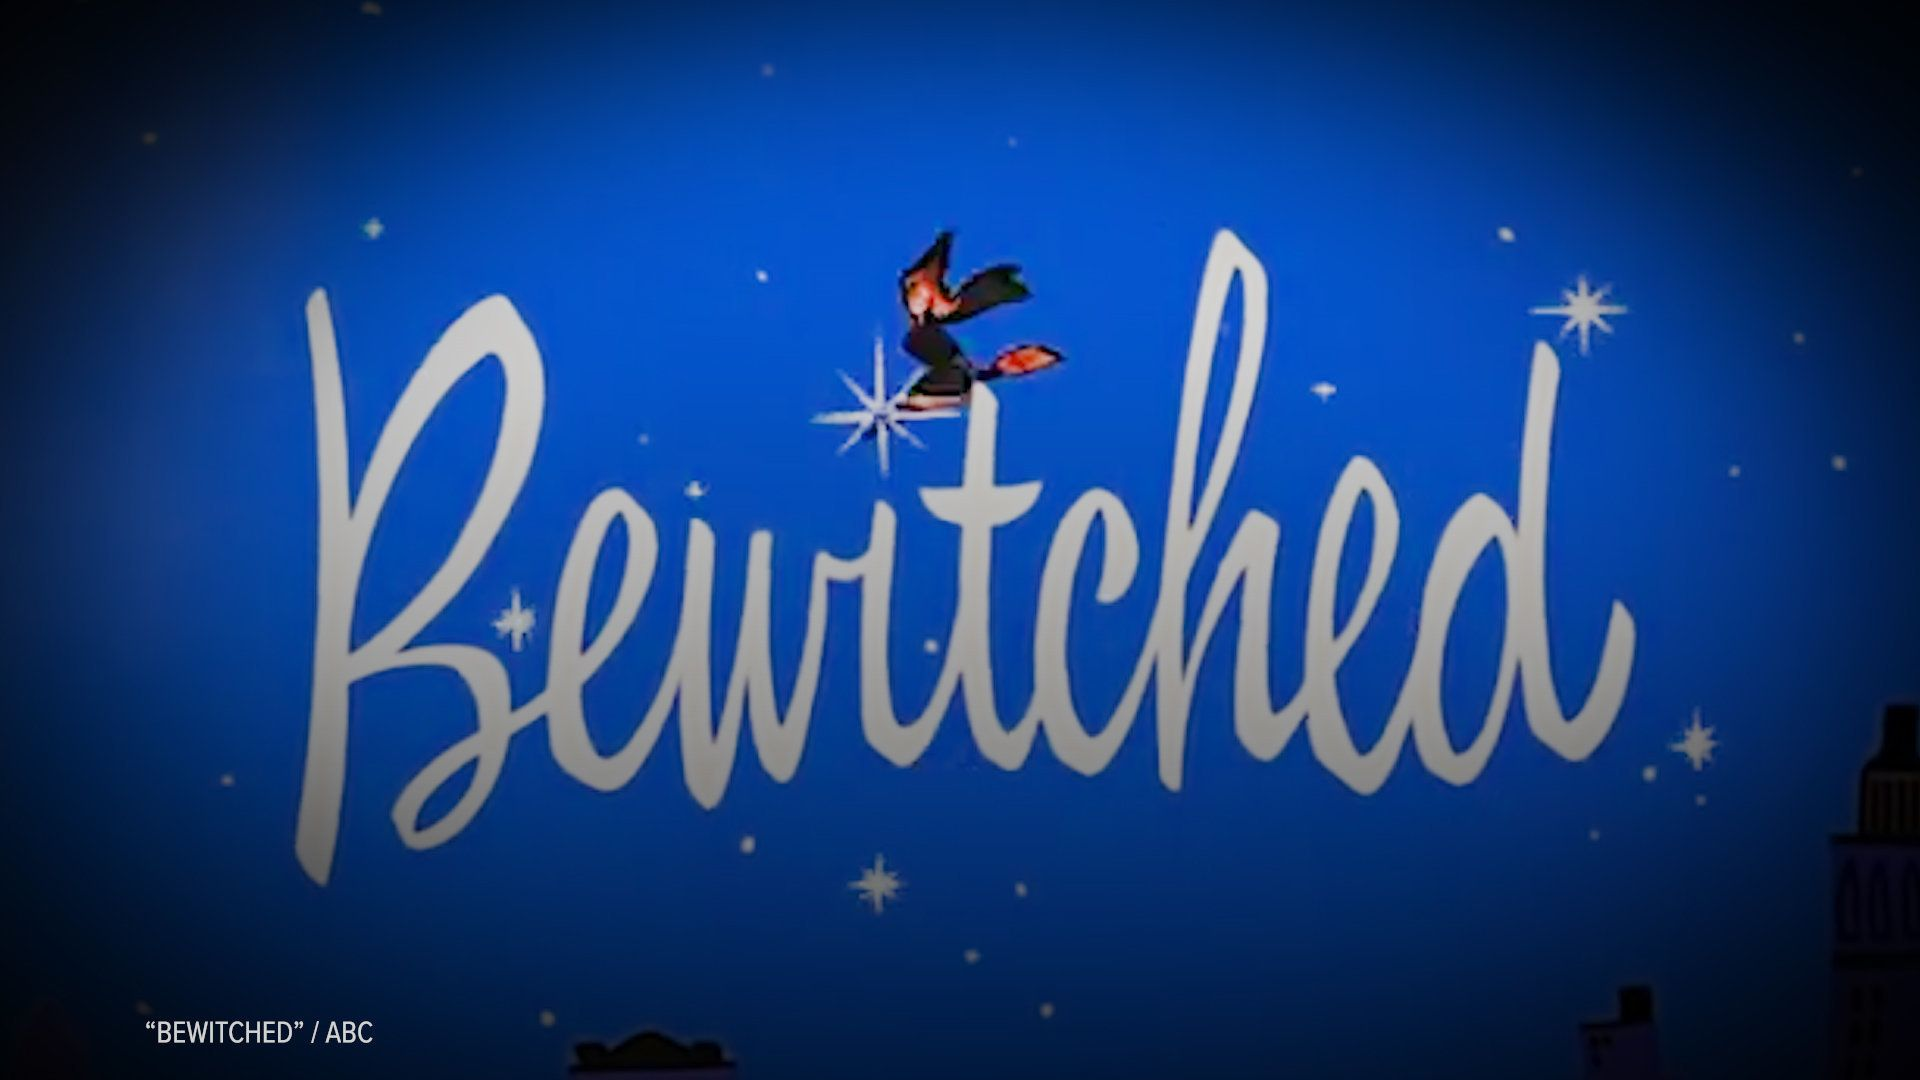 Bewitched is coming back and will feature an interracial family this time around